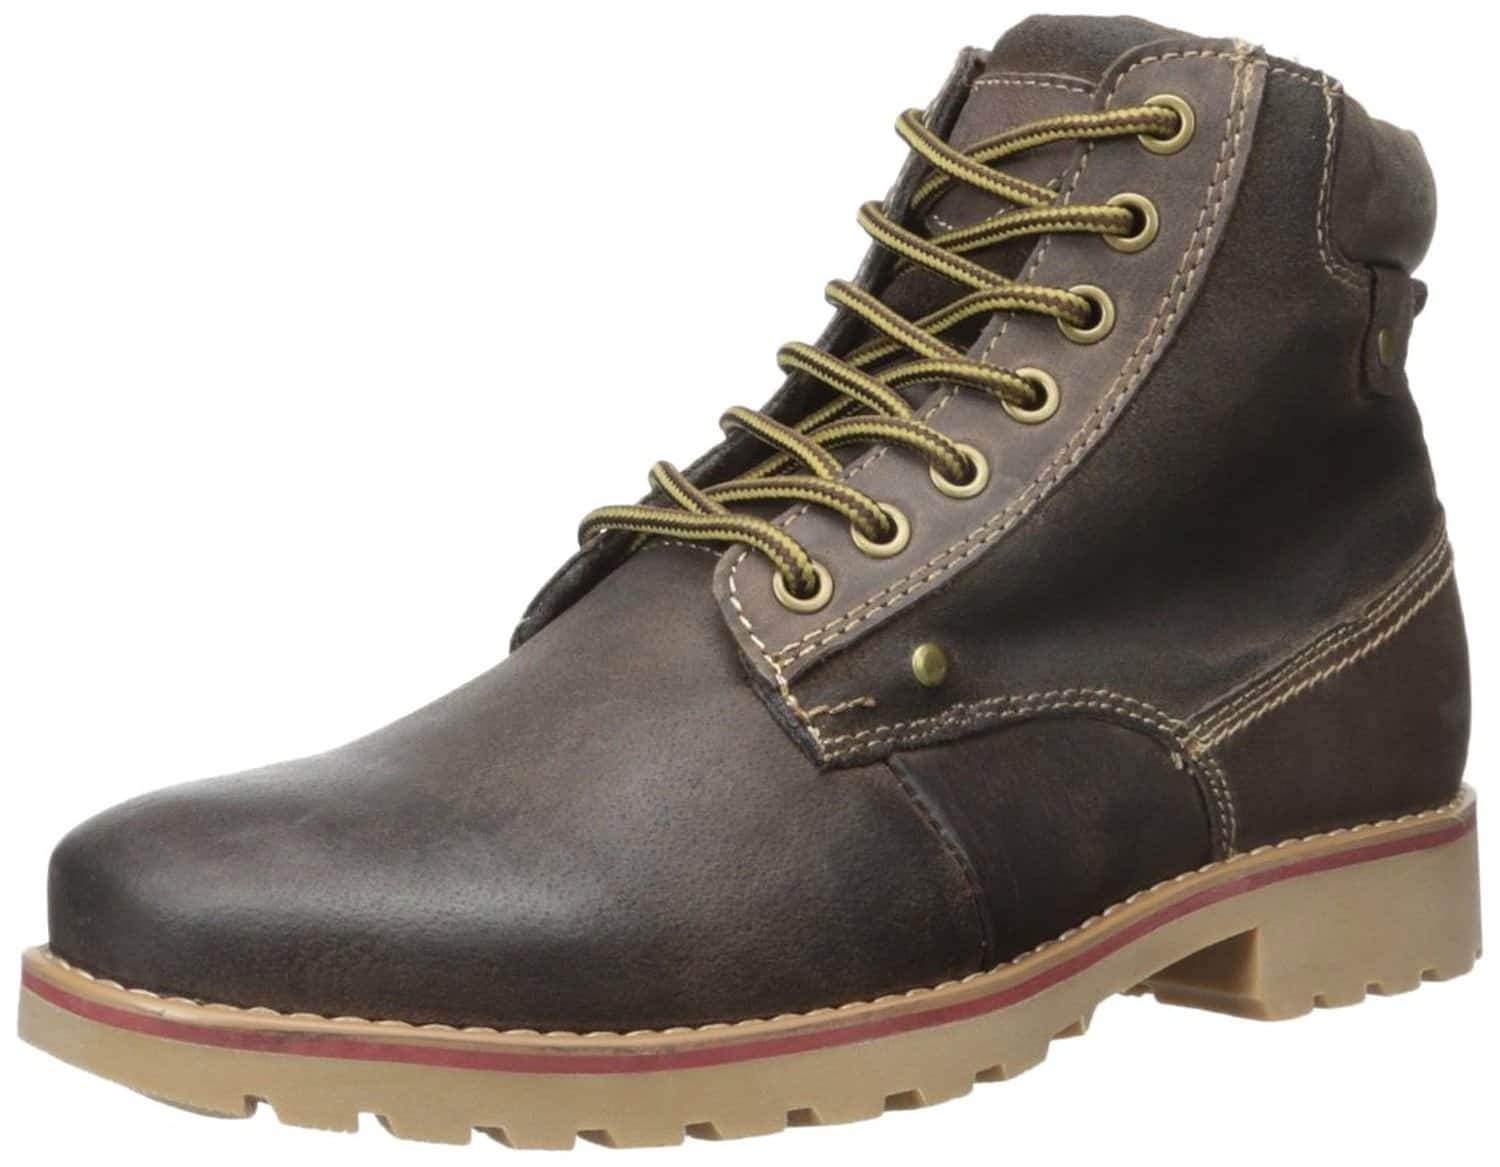 Steve Madden Men's Leather Canterr Boots  from $16